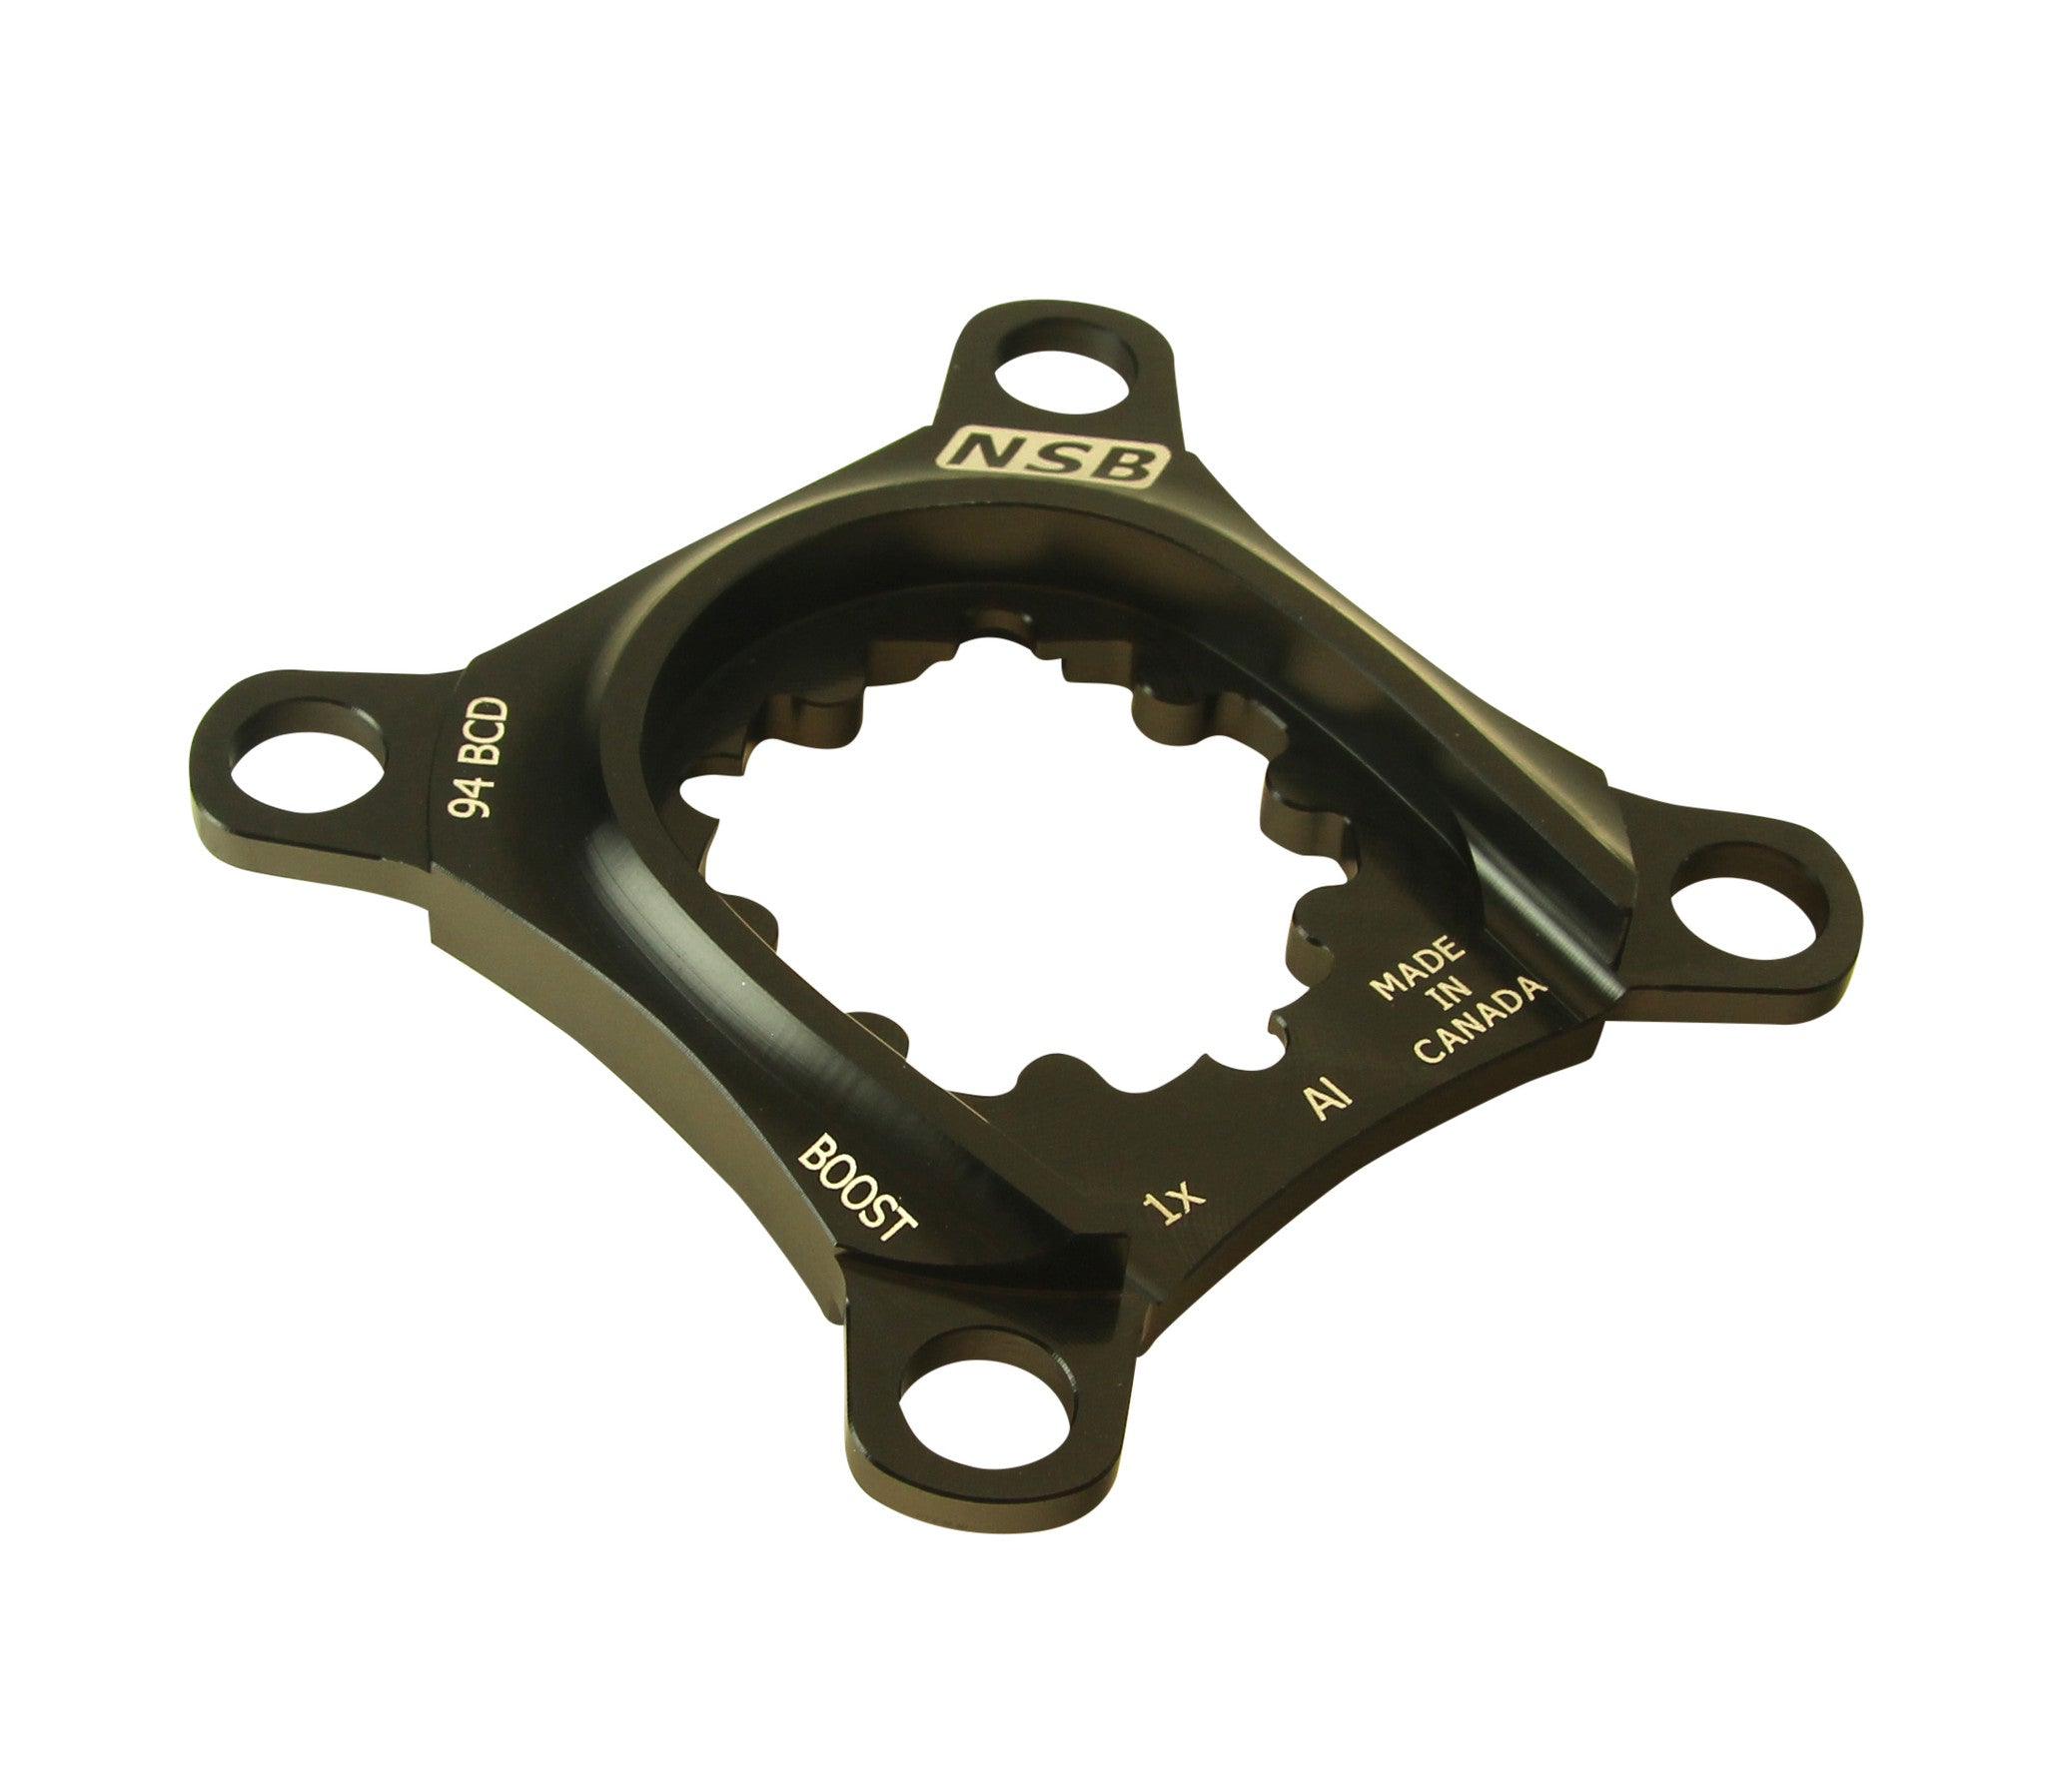 1x 94 BCD Spider for SRAM Cranks (Boost Compatible)